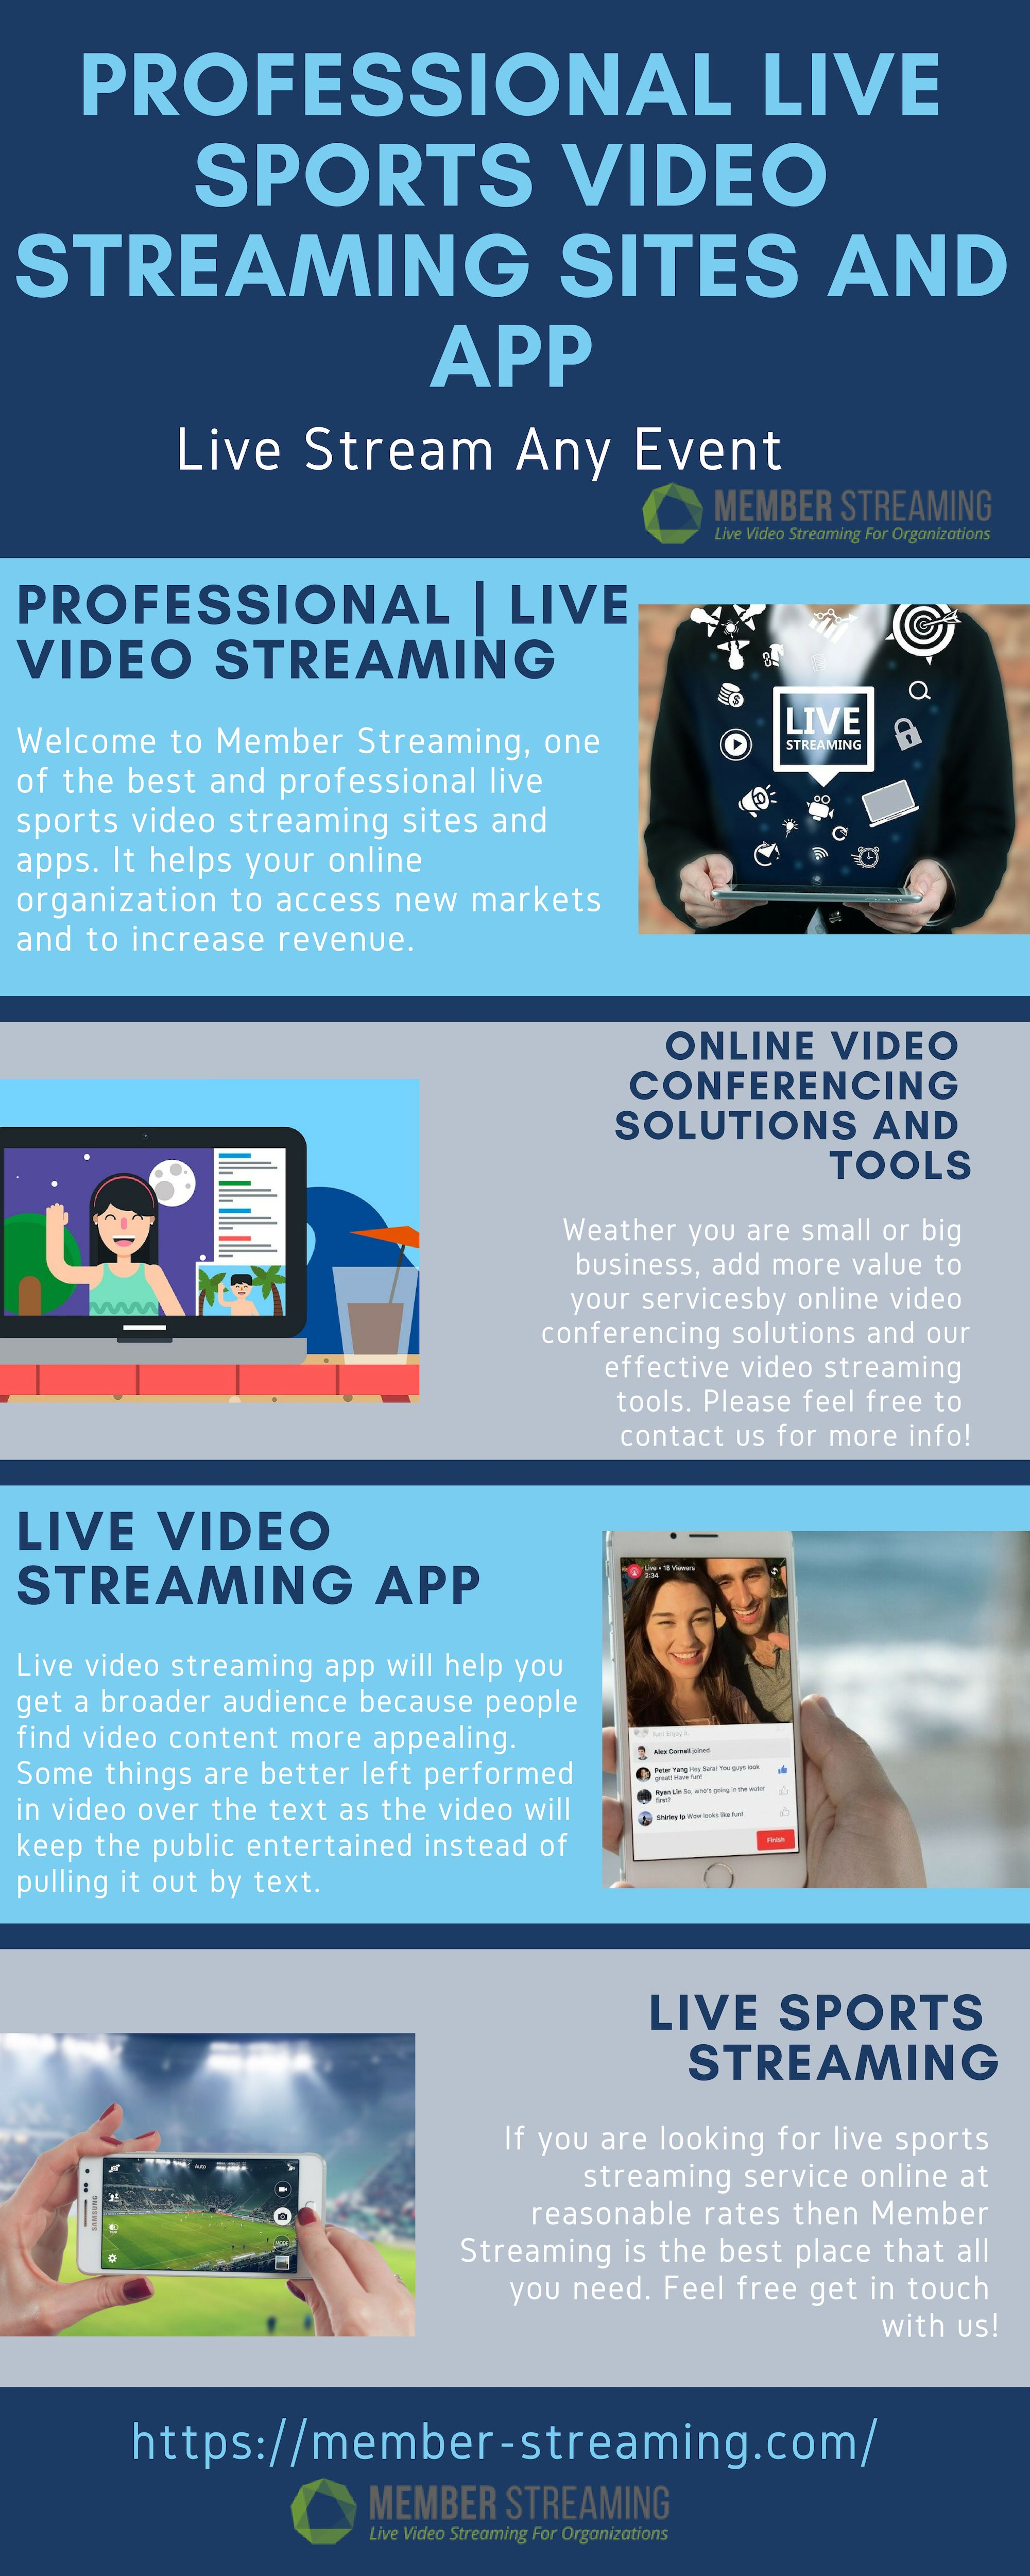 Online Video Streaming service provider allows you to